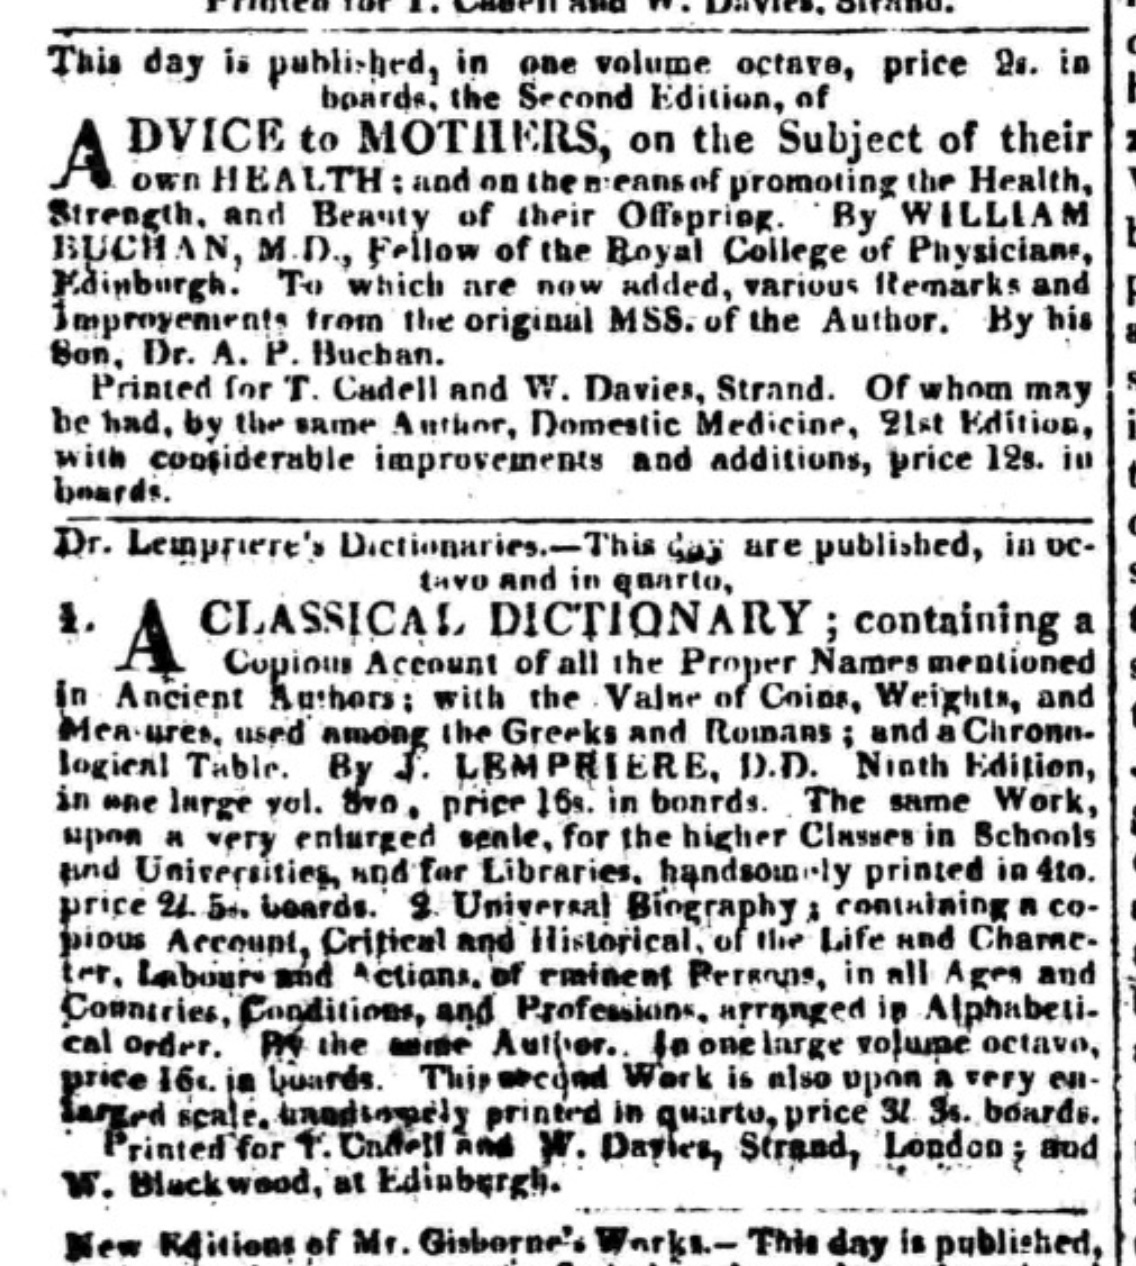 A few random publication announcements in The Morning Post for 21         November 1817 (click to enlarge)